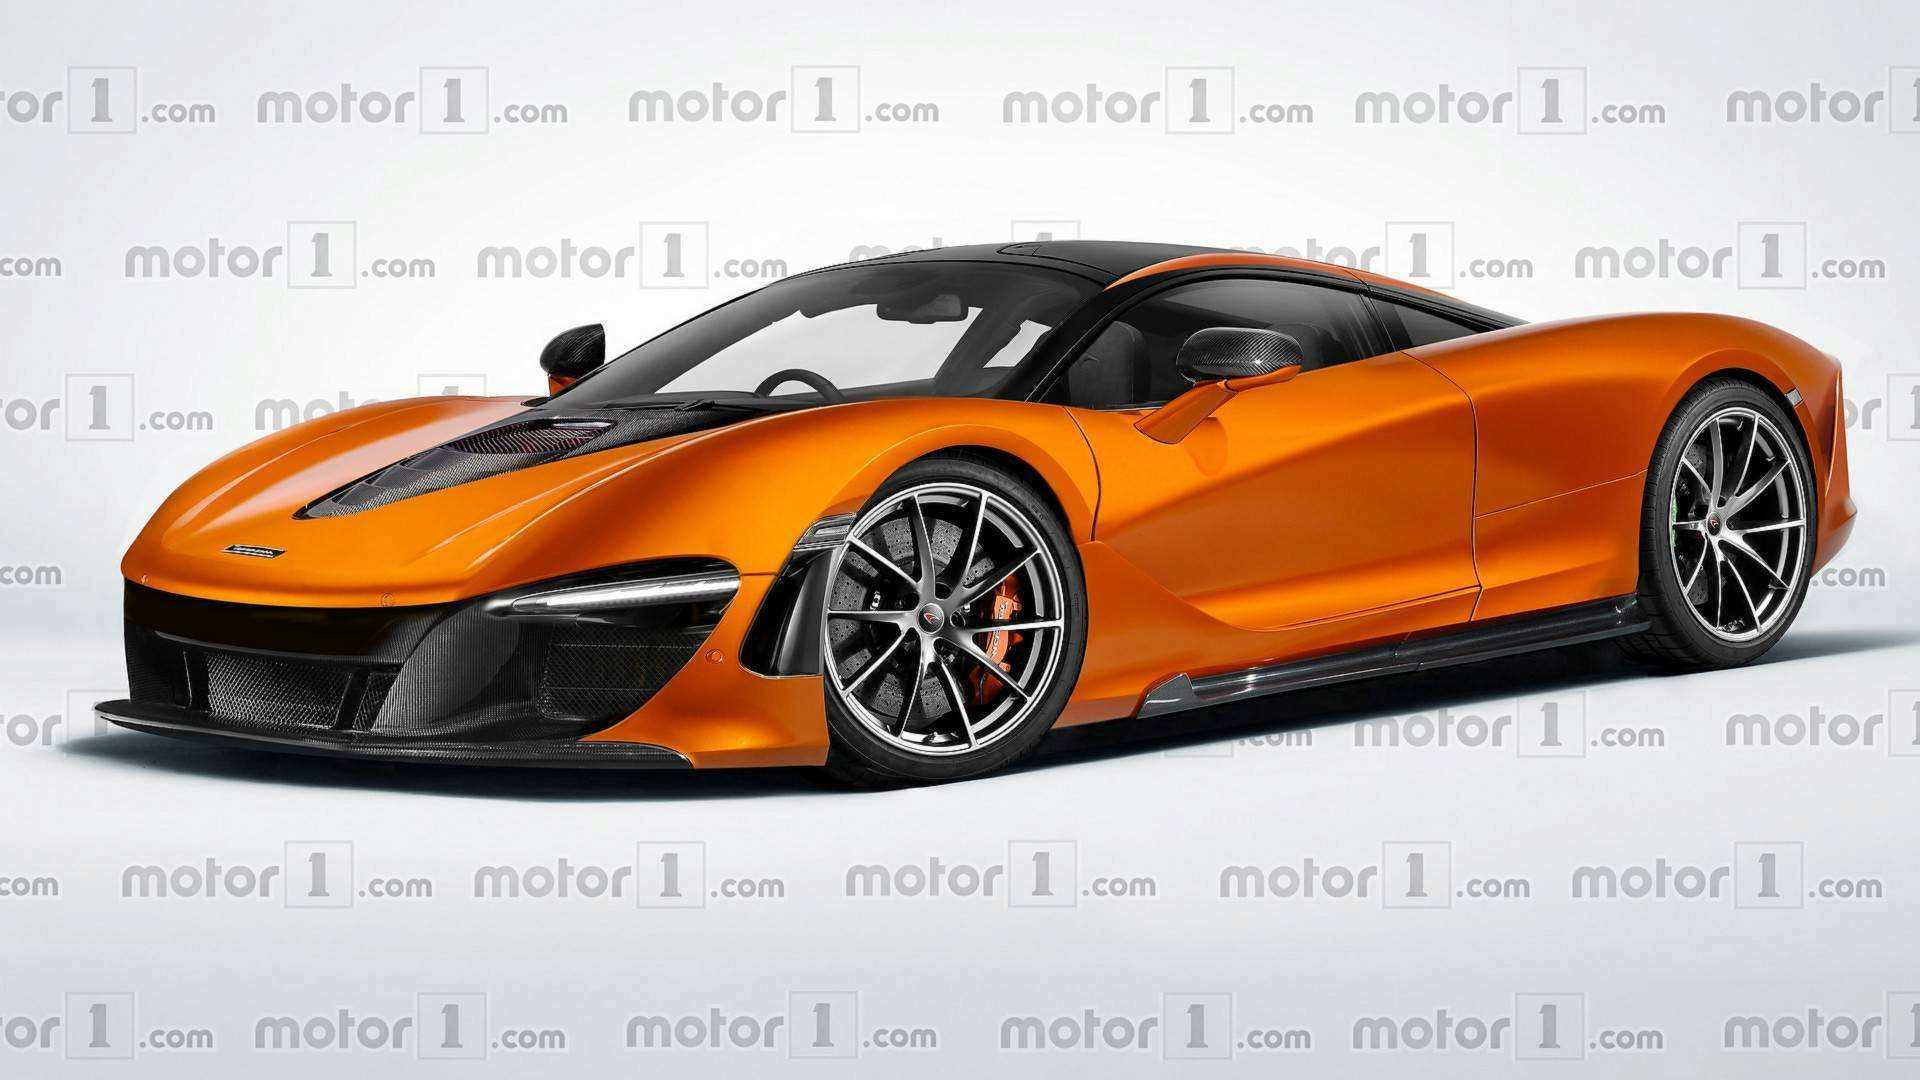 33 New 2020 Mclaren Bp23 Overview